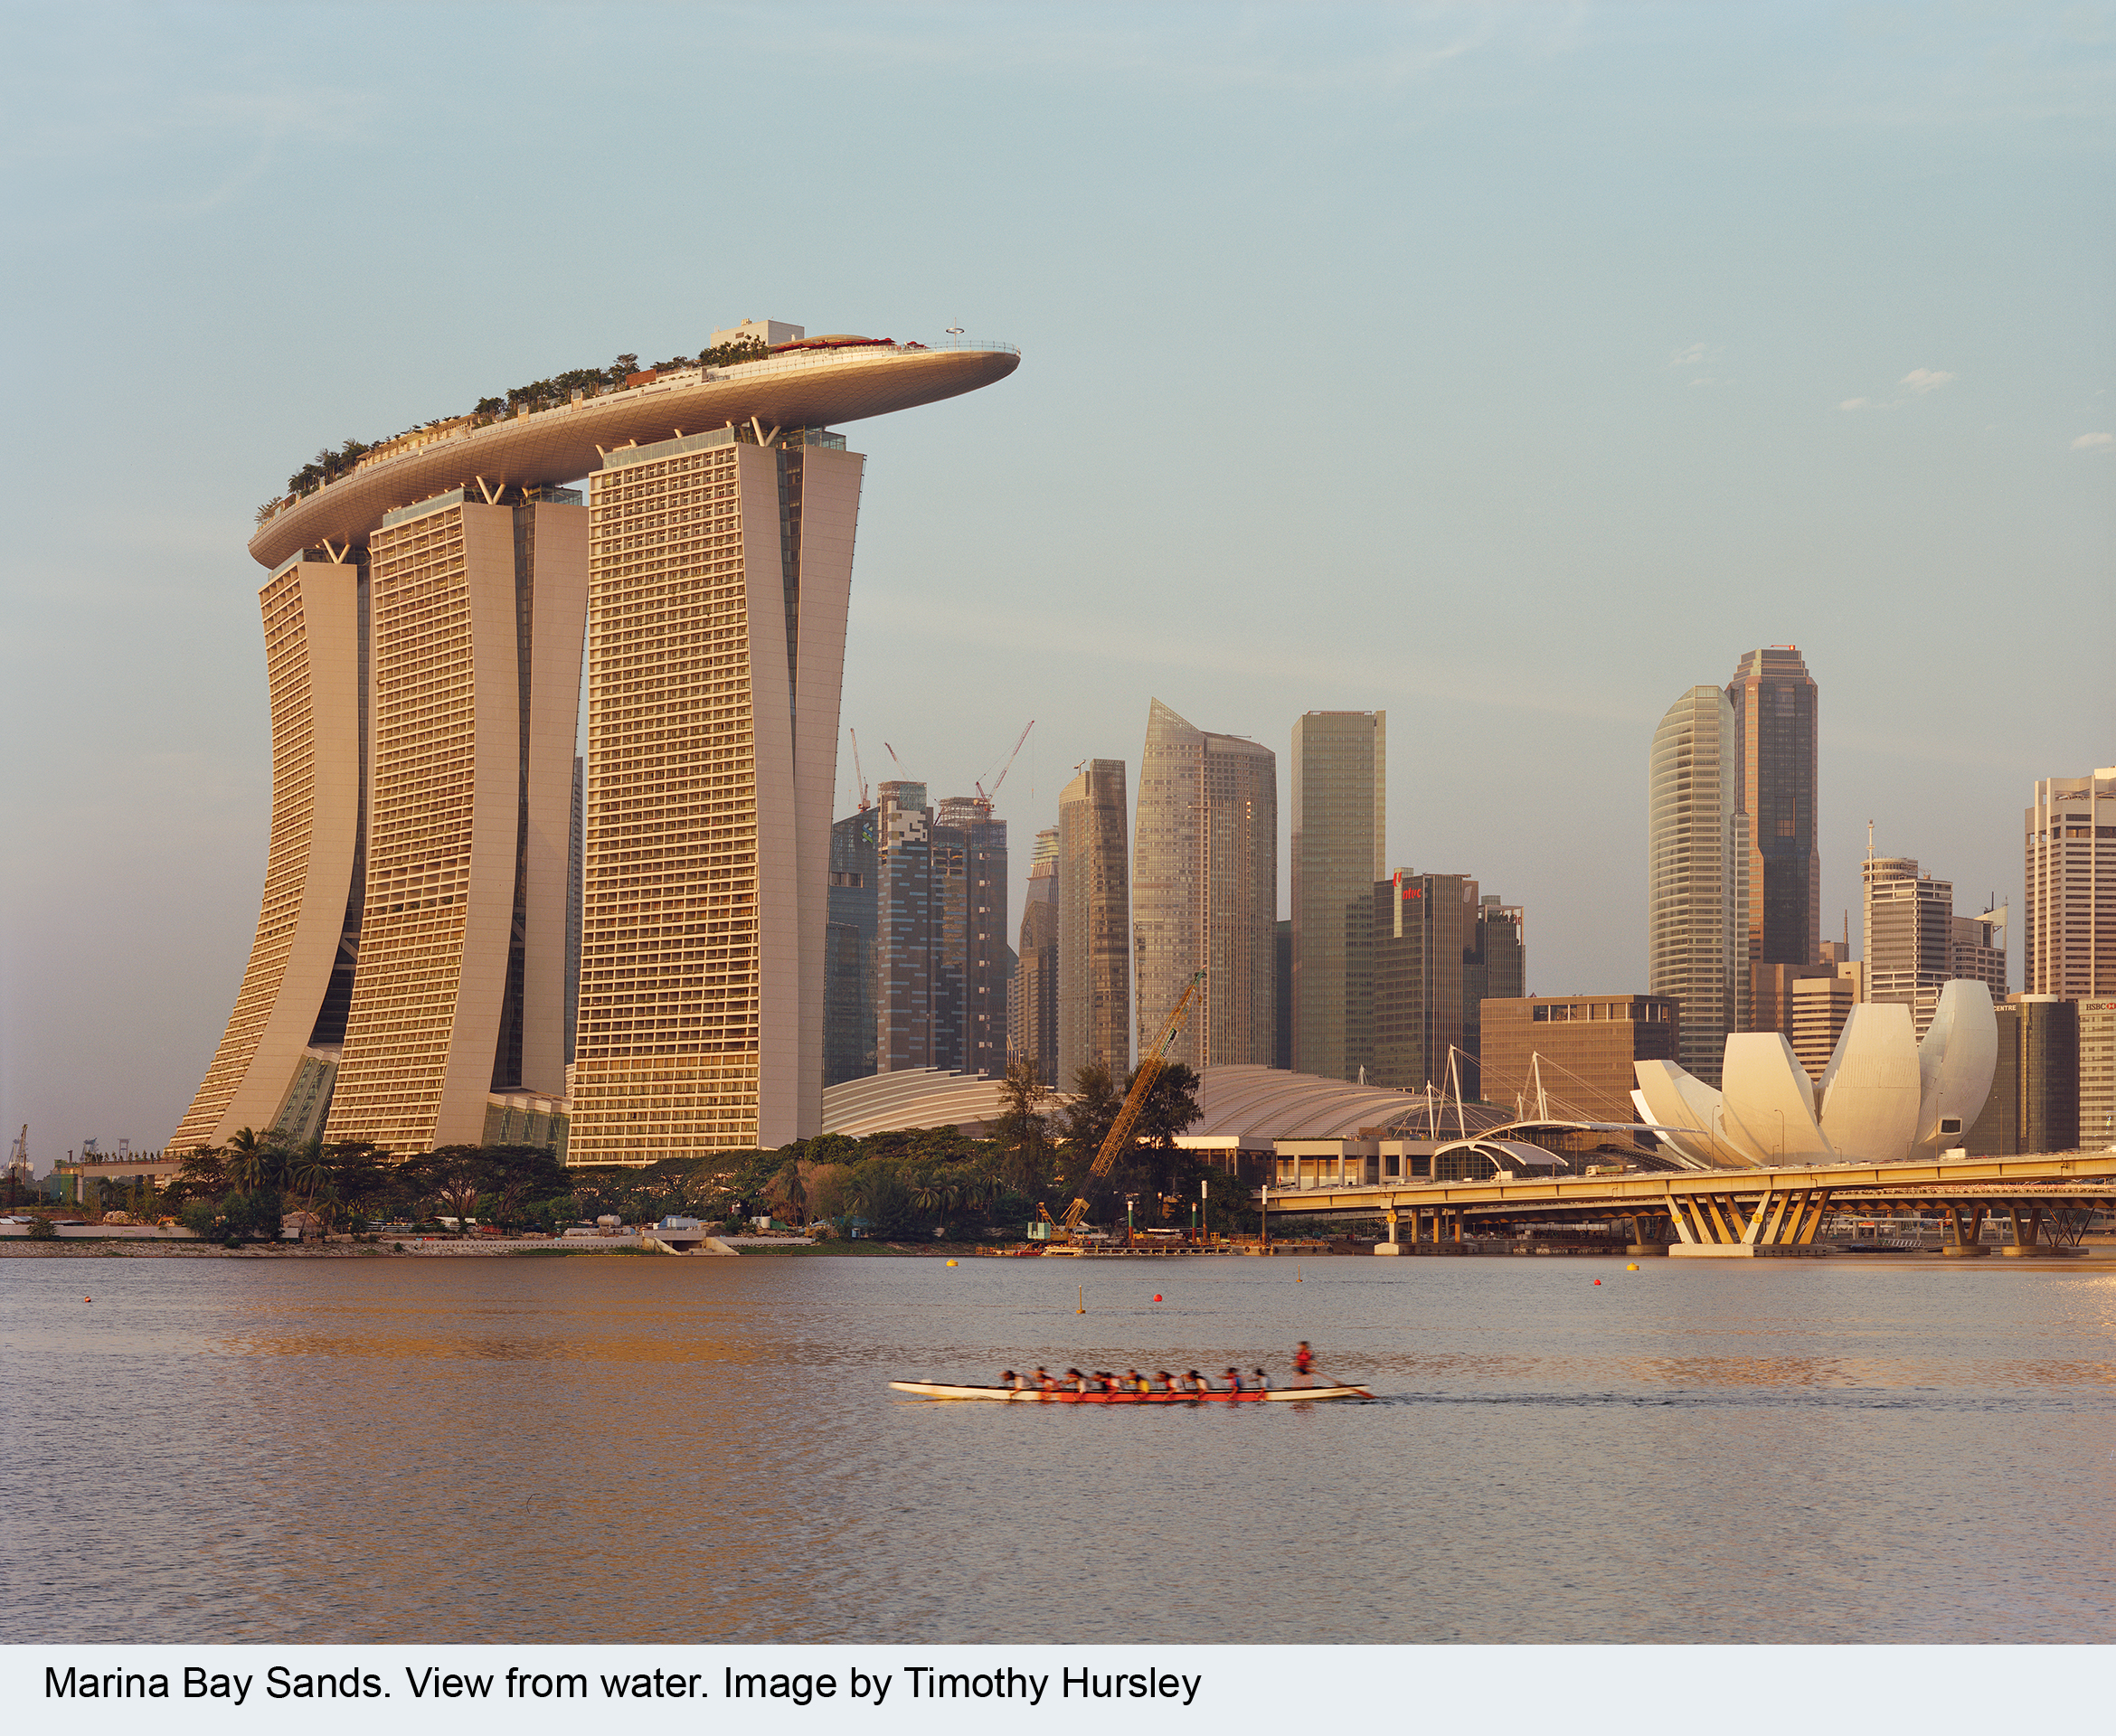 2013-10-08-MarinaBaySands_Viewfromwater_imagebyTimothyHursley_CP.jpg